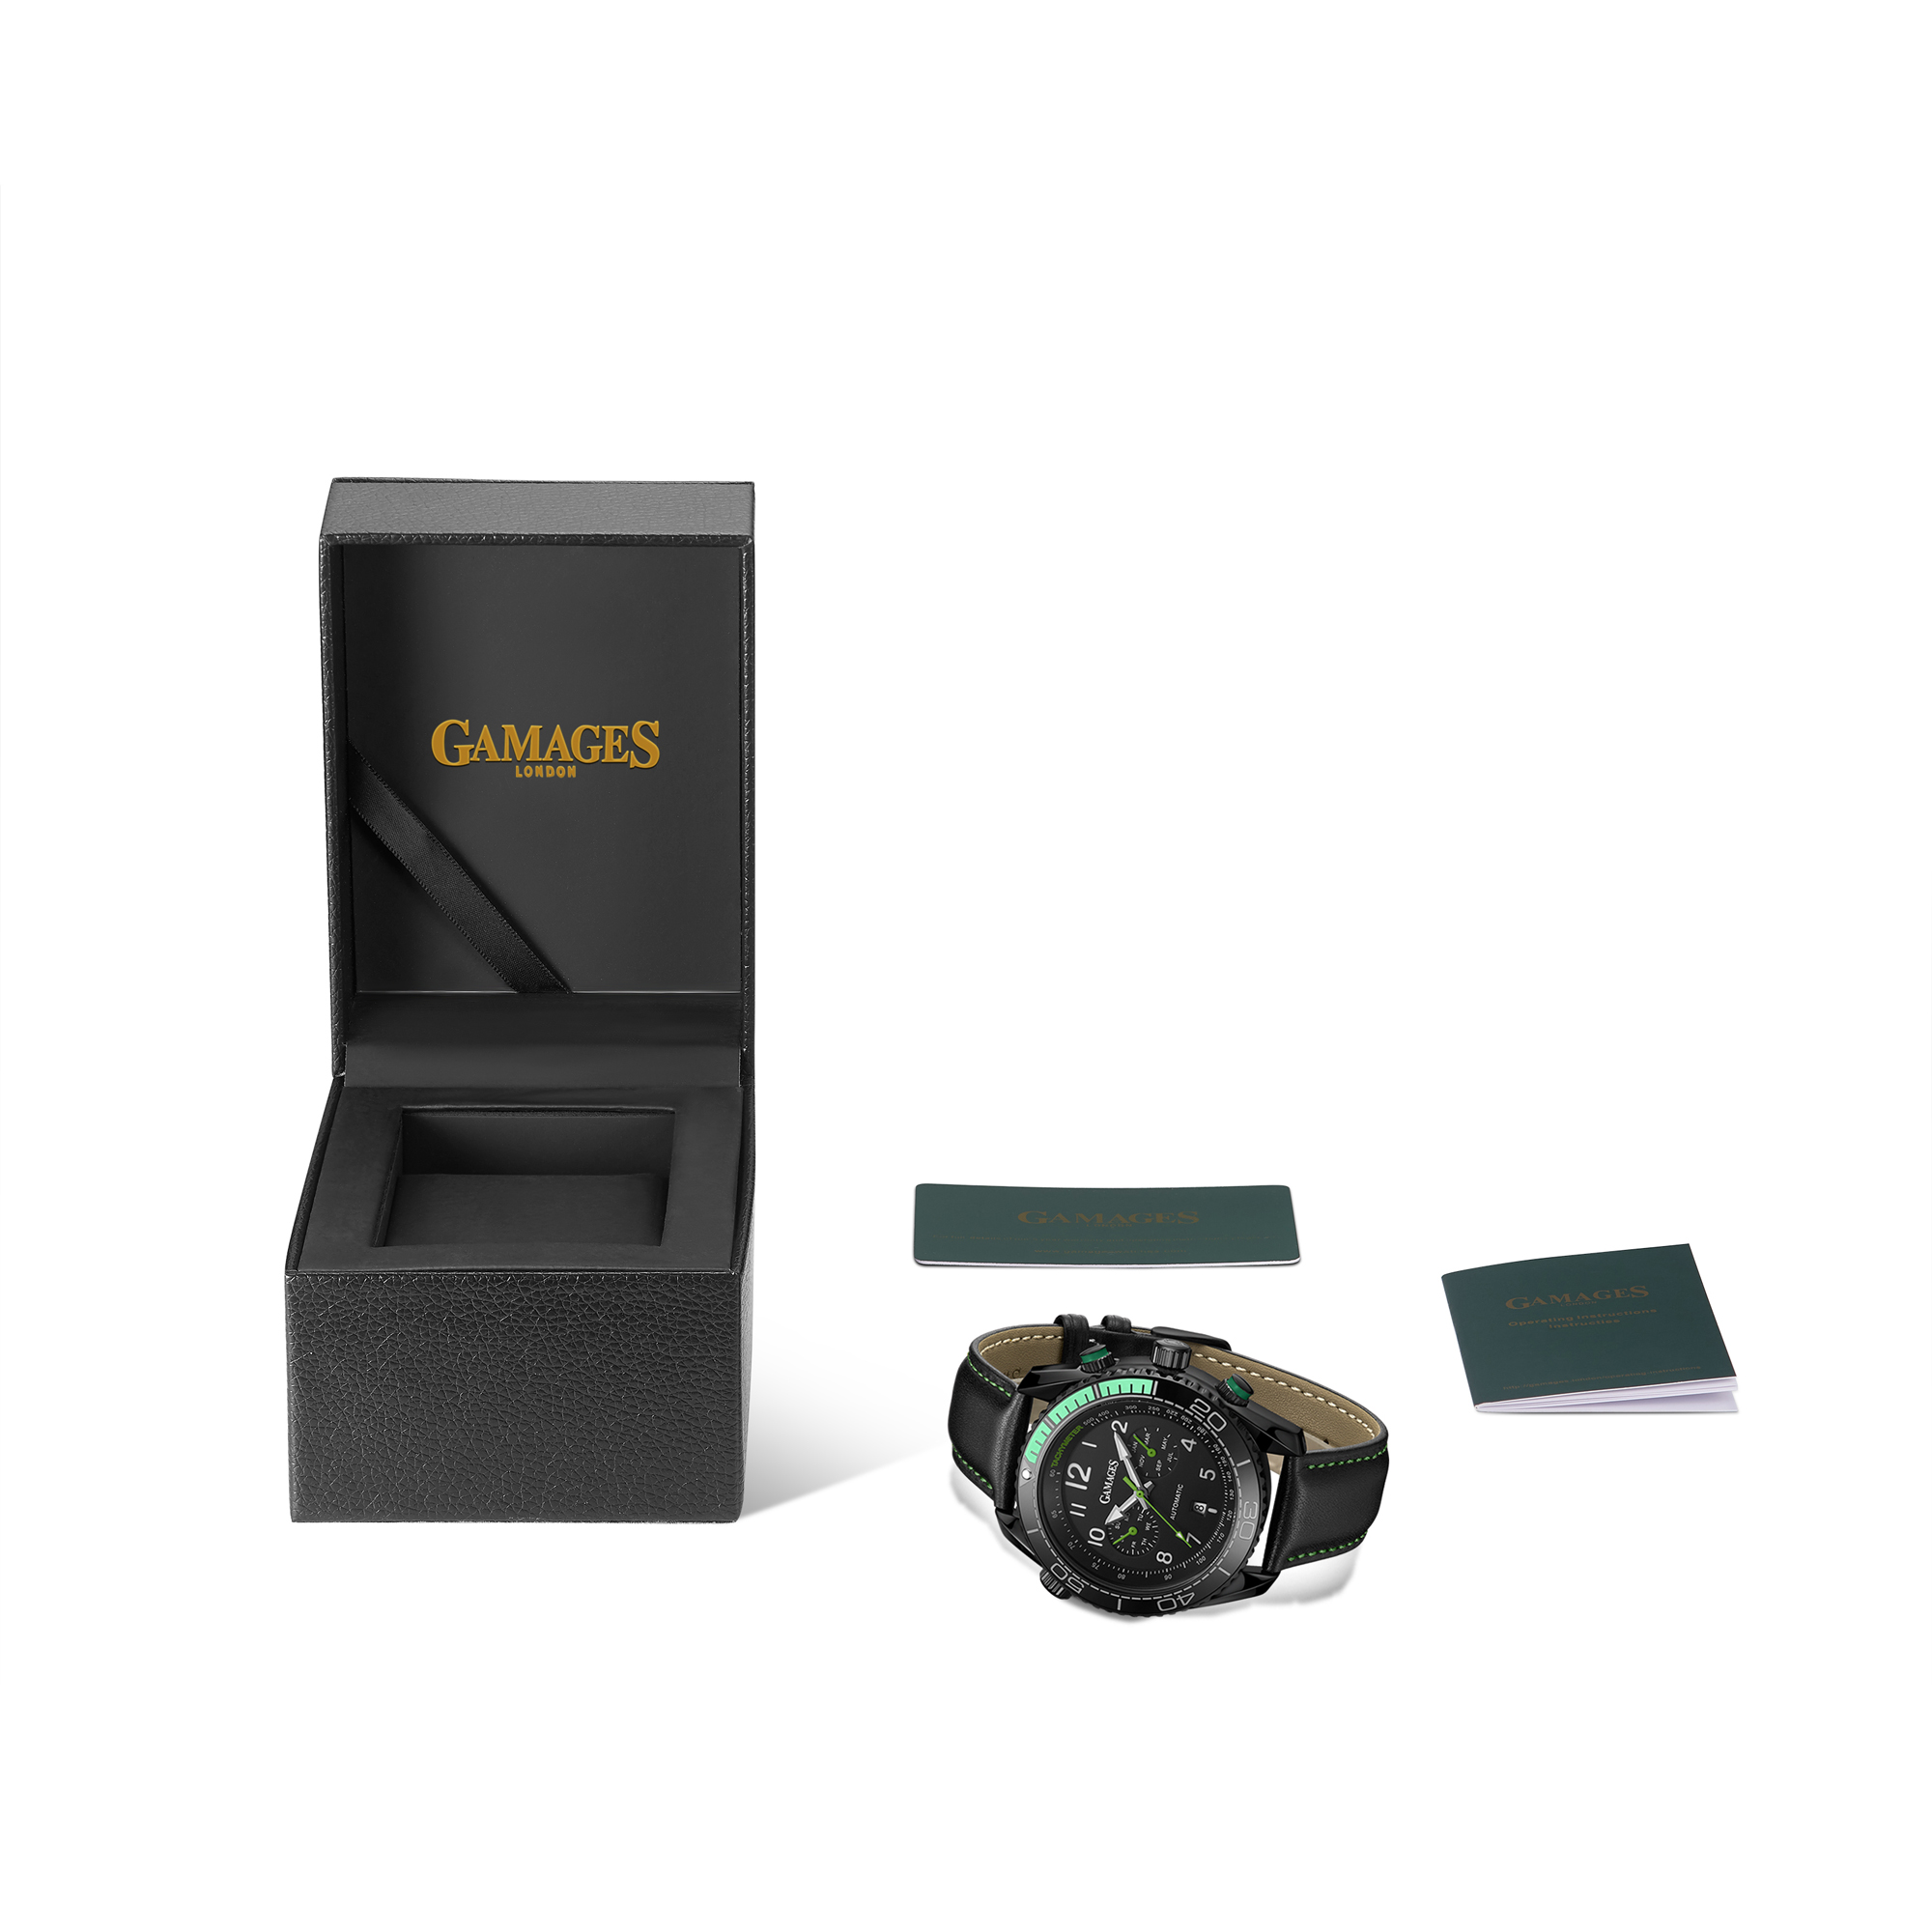 Limited Edition Hand Assembled Gamages Supreme Automatic Green – 5 Year Warranty & Free Delivery - Image 2 of 6